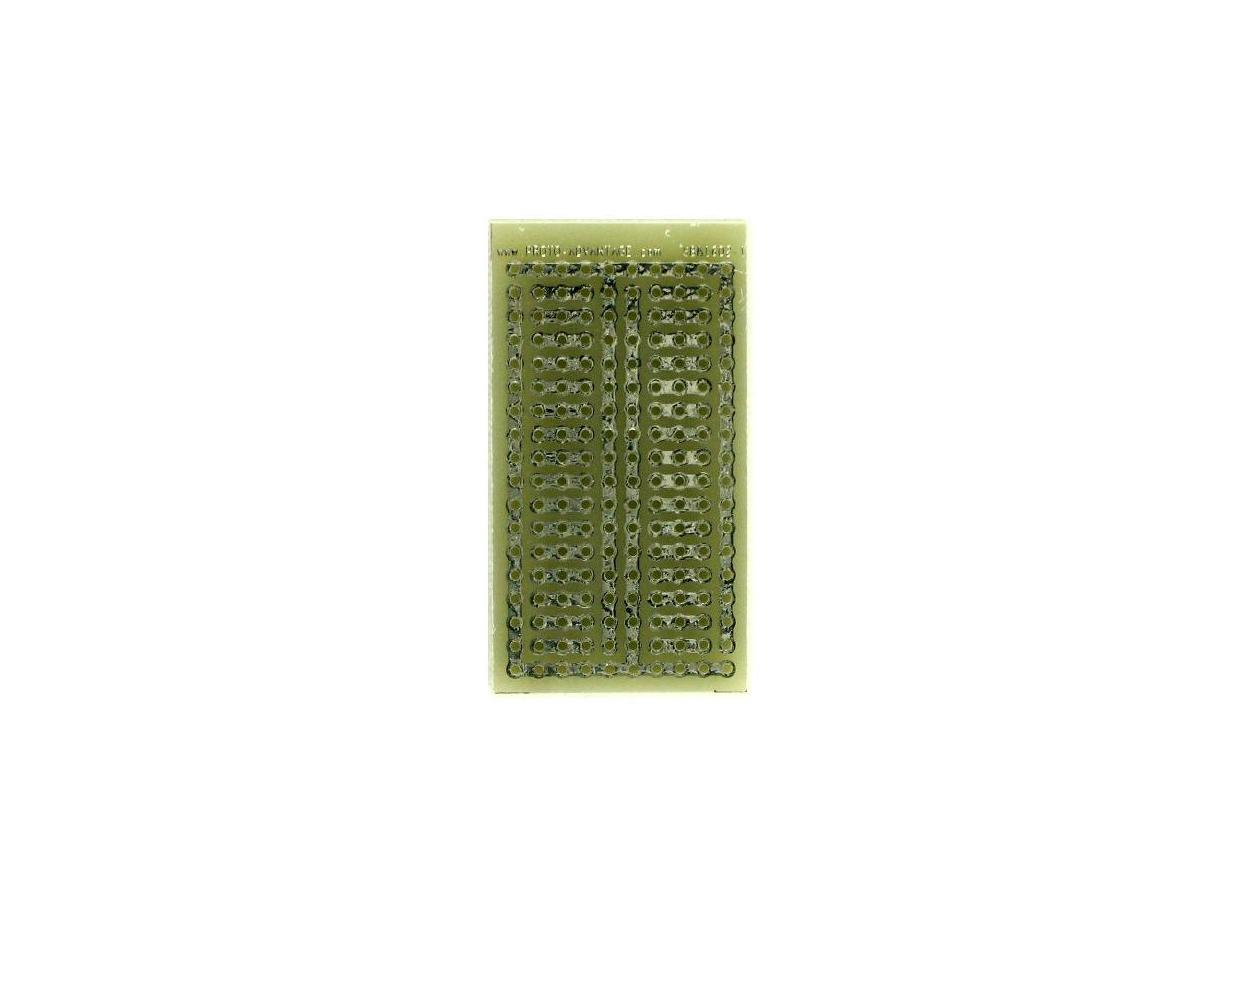 Solder Breadboard (16 row 2 column) 0